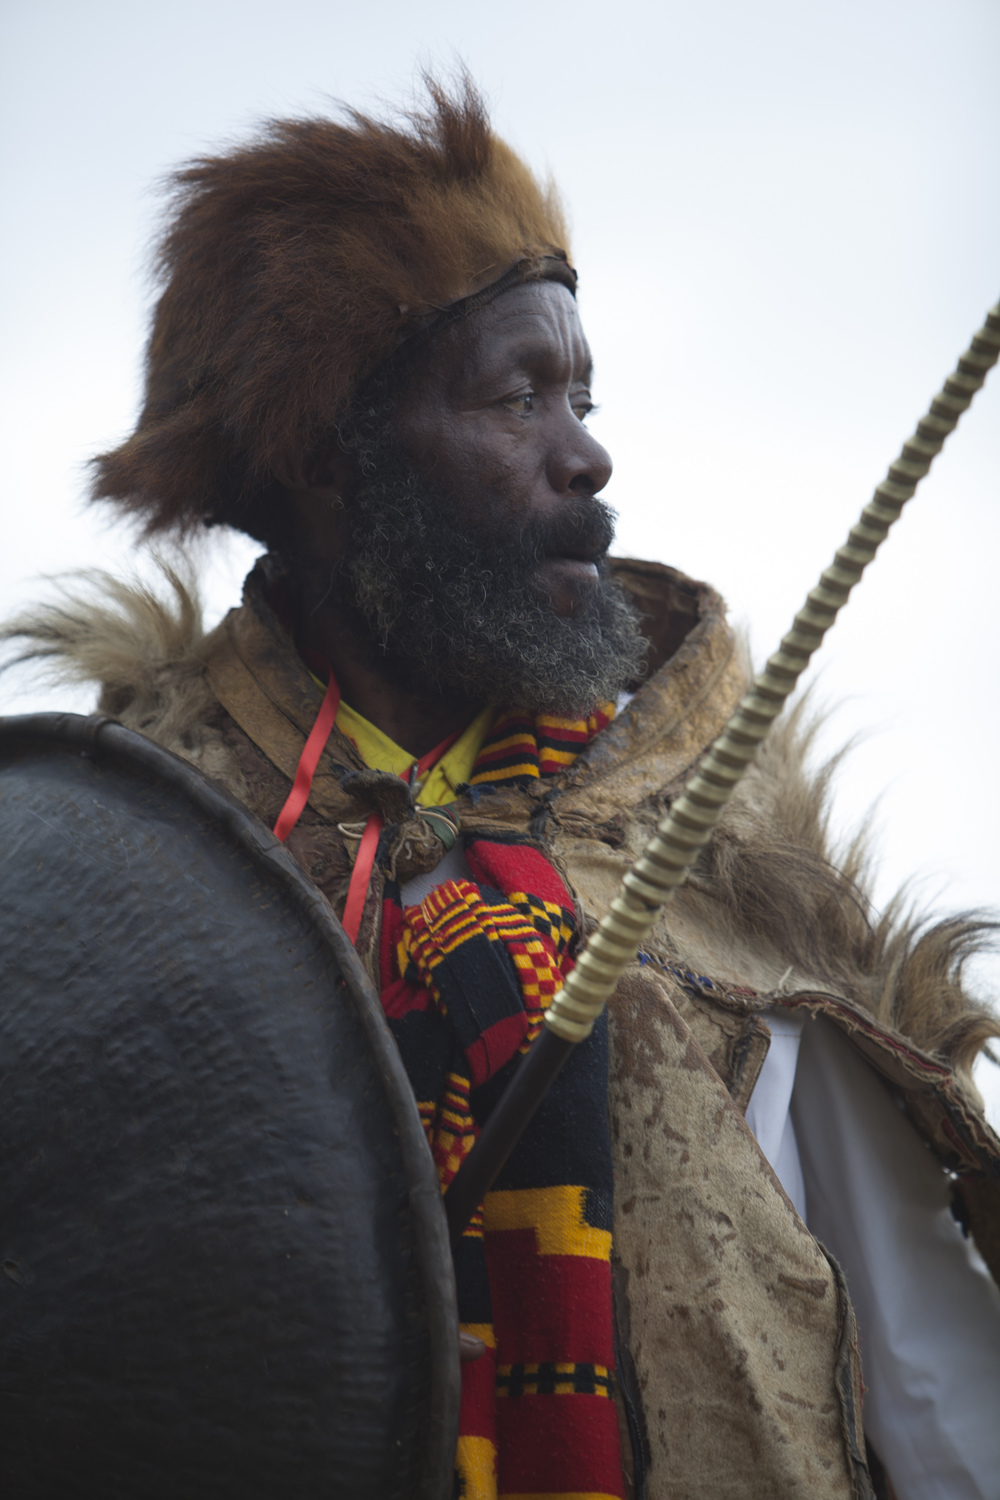 A man is pictured in traditional Dorze clothing during the 50 year anniversary celebration of the formation of Arba Minch town, part of the Southerm Nation's Nationalities and Peoples region of Ethiopia, on September 6 2014. Arba Minch celebrated it's 50th birthday with a commorative gathering at the town's stadium, as well as an inauguration of a newly constructed roadway.